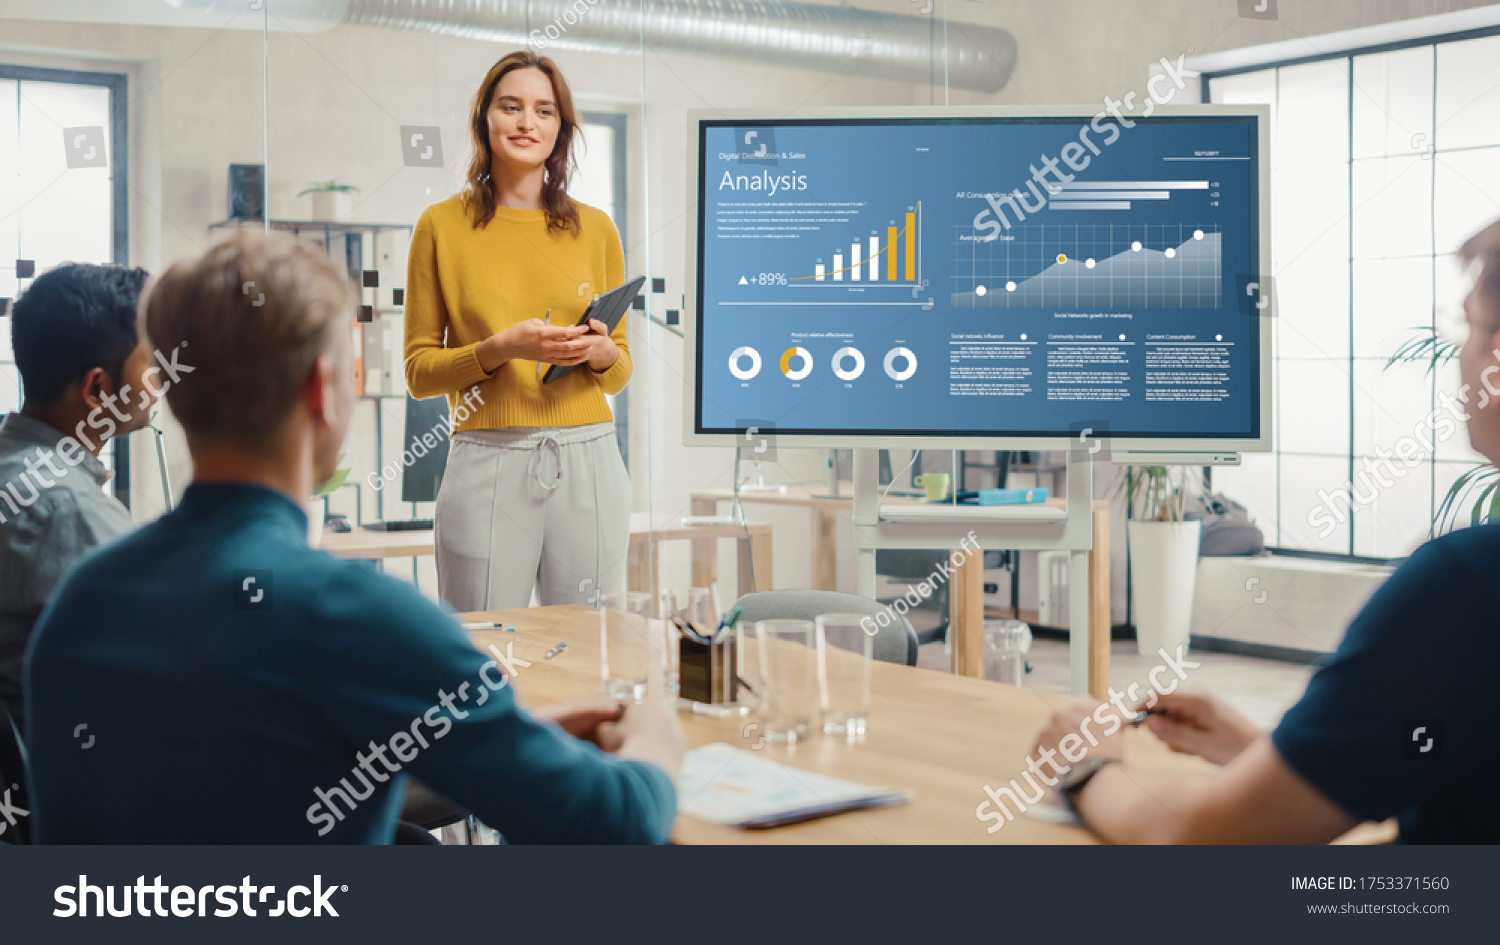 Female Chief Analyst Holds Meeting Presentation for a Team of Economists. She Shows Digital Interactive Whiteboard with Growth Analysis, Charts, Statistics and Data. People Work in Creative Office. #1753371560